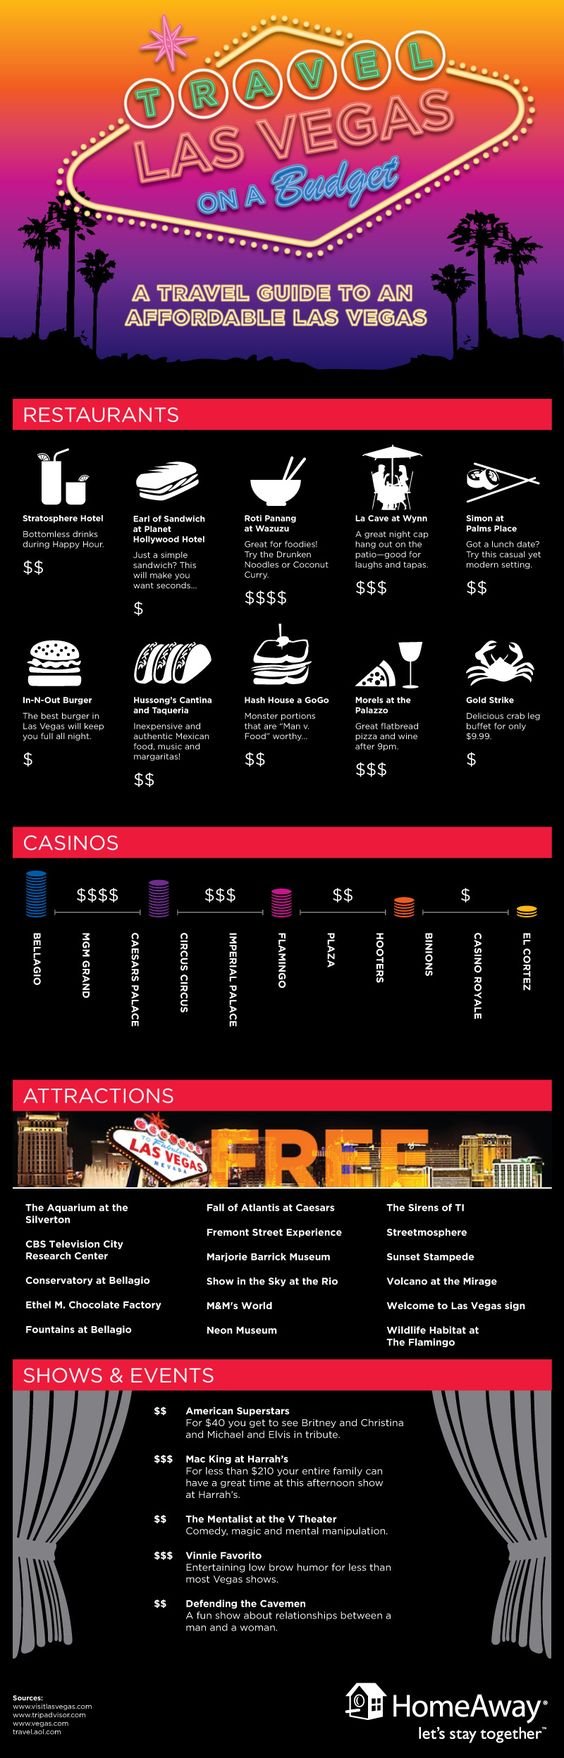 Las Vegas is a destination for every price range. See this #LasVegas infographic on how you can save during your next visit!